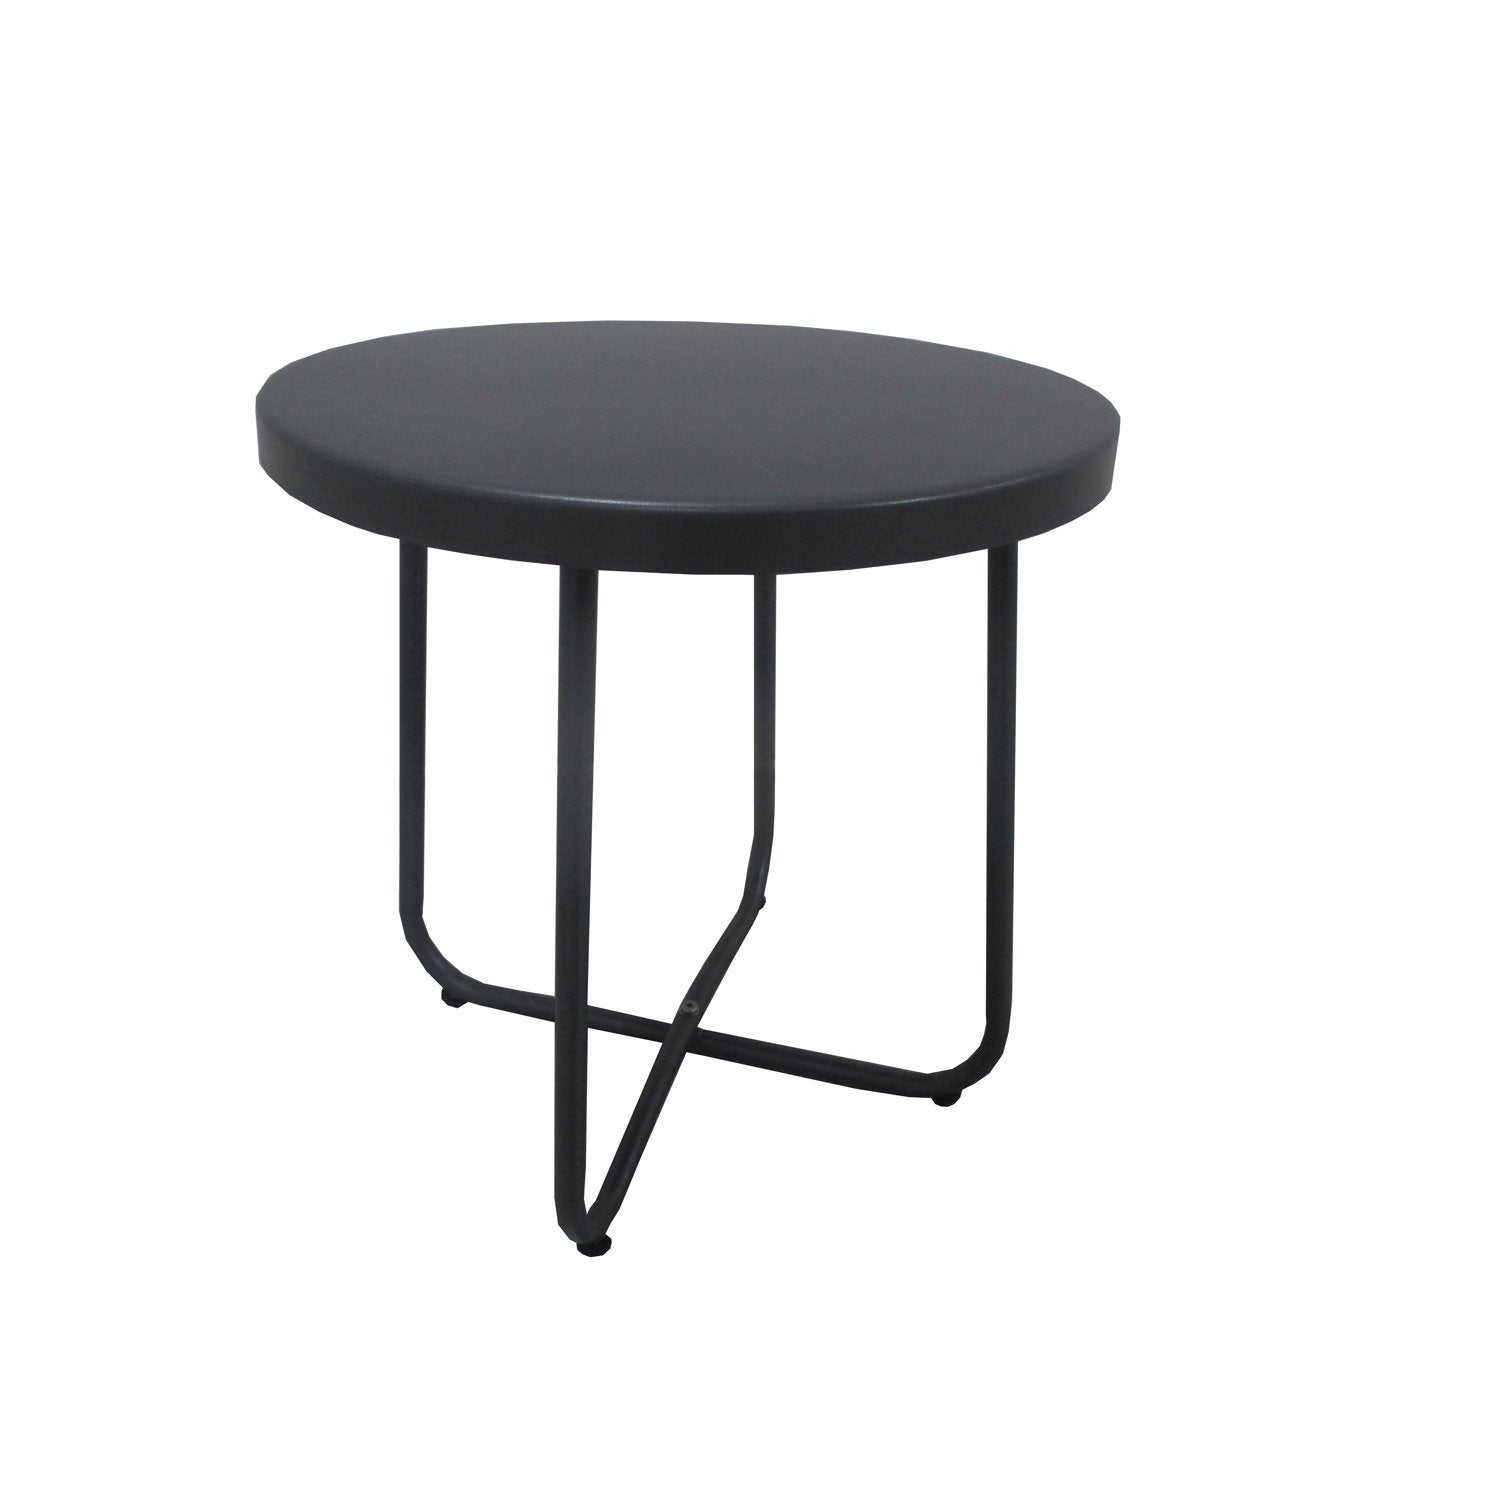 table de jardin bombay ronde anthracite 2 personnes leroy merlin. Black Bedroom Furniture Sets. Home Design Ideas